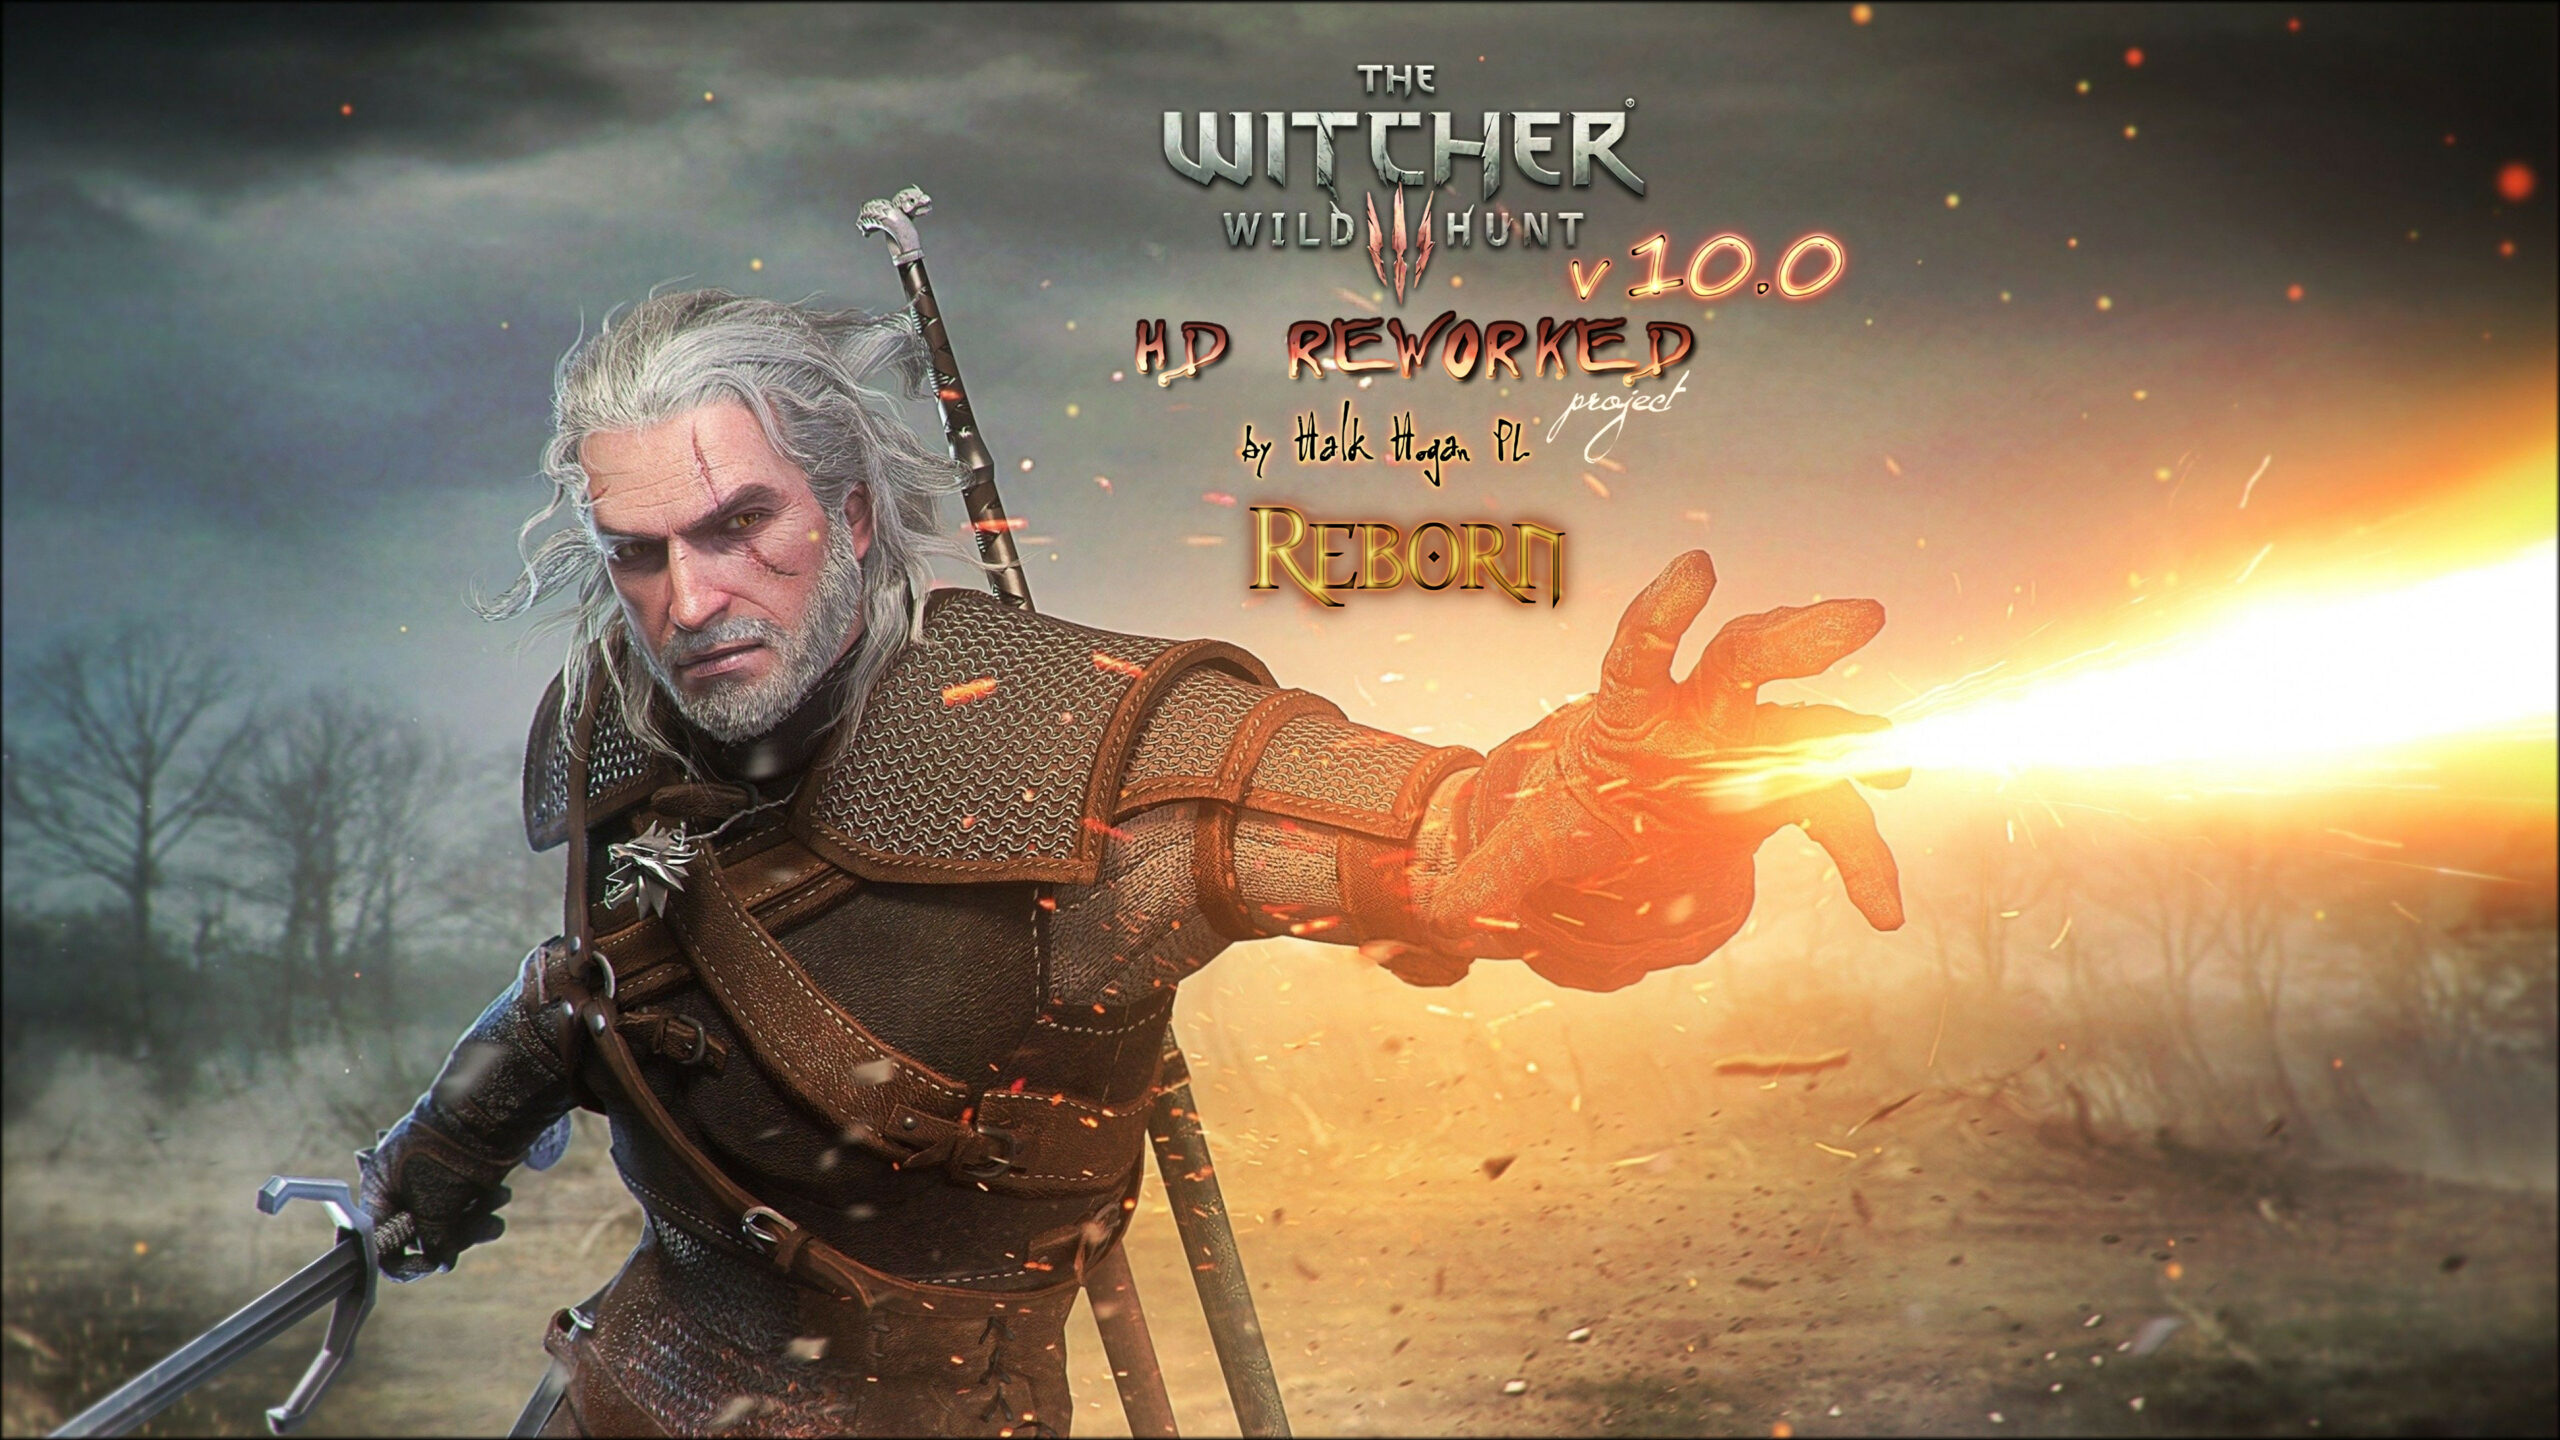 The Witcher 3 Hd Reworked Project 11 0 New Video Shows More